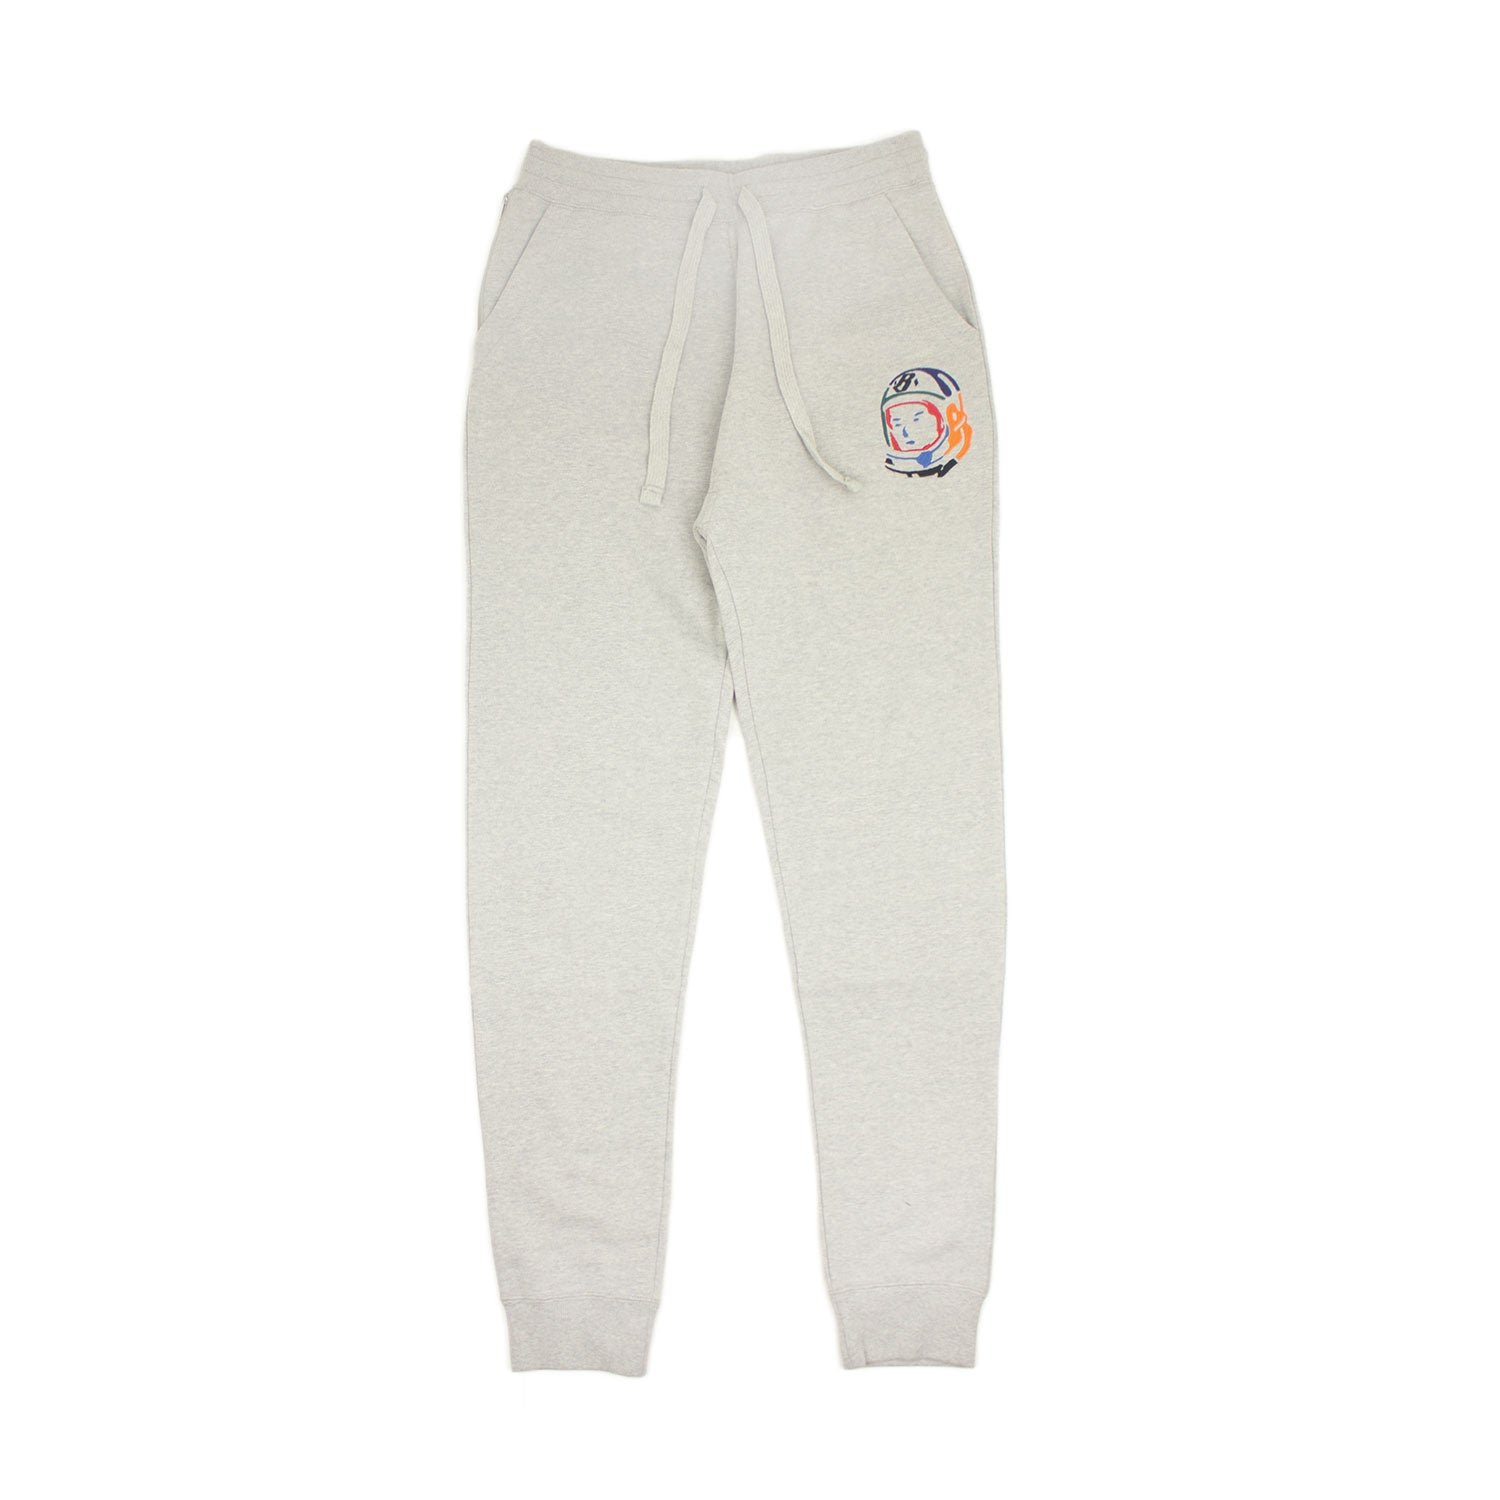 MULTI HELMET SWEATPANTS